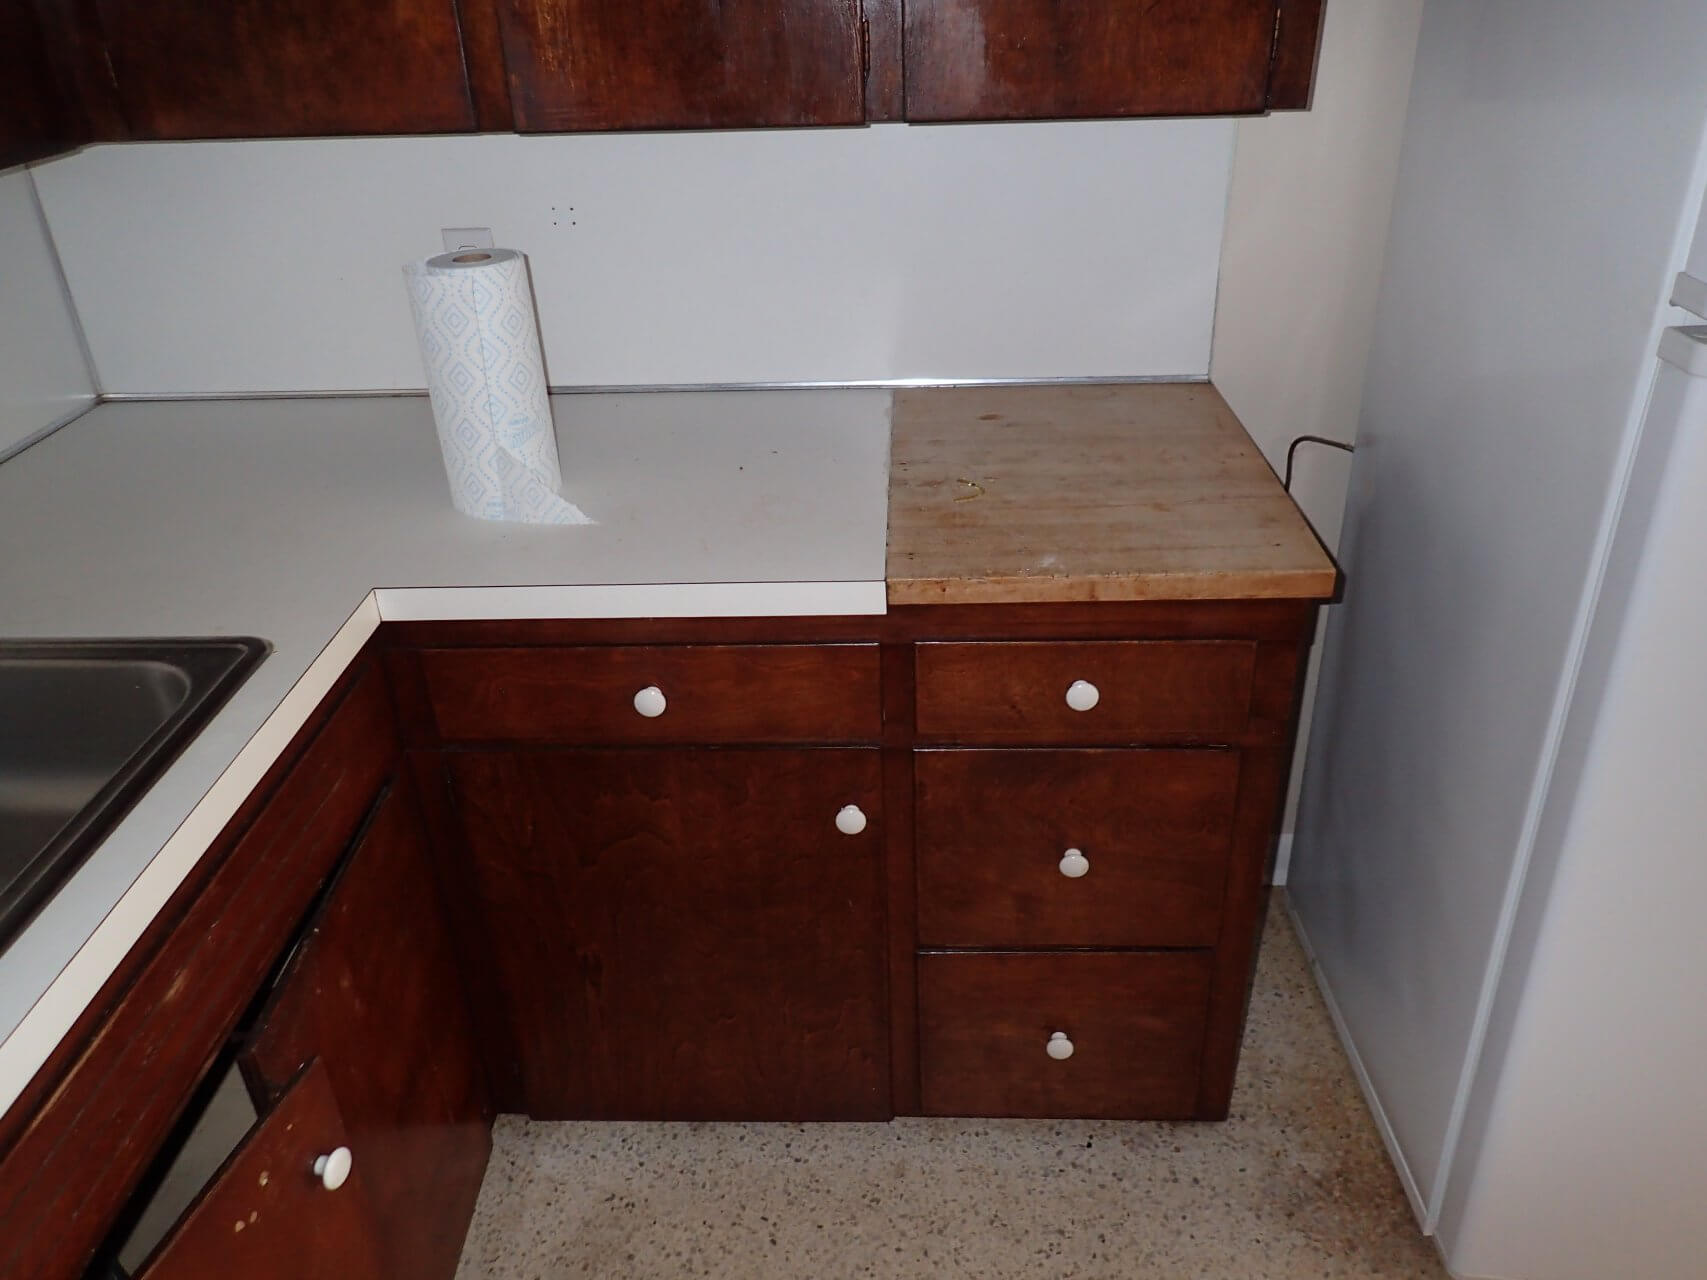 Before: Old kitchen with busted white countertop in kitchen remodel